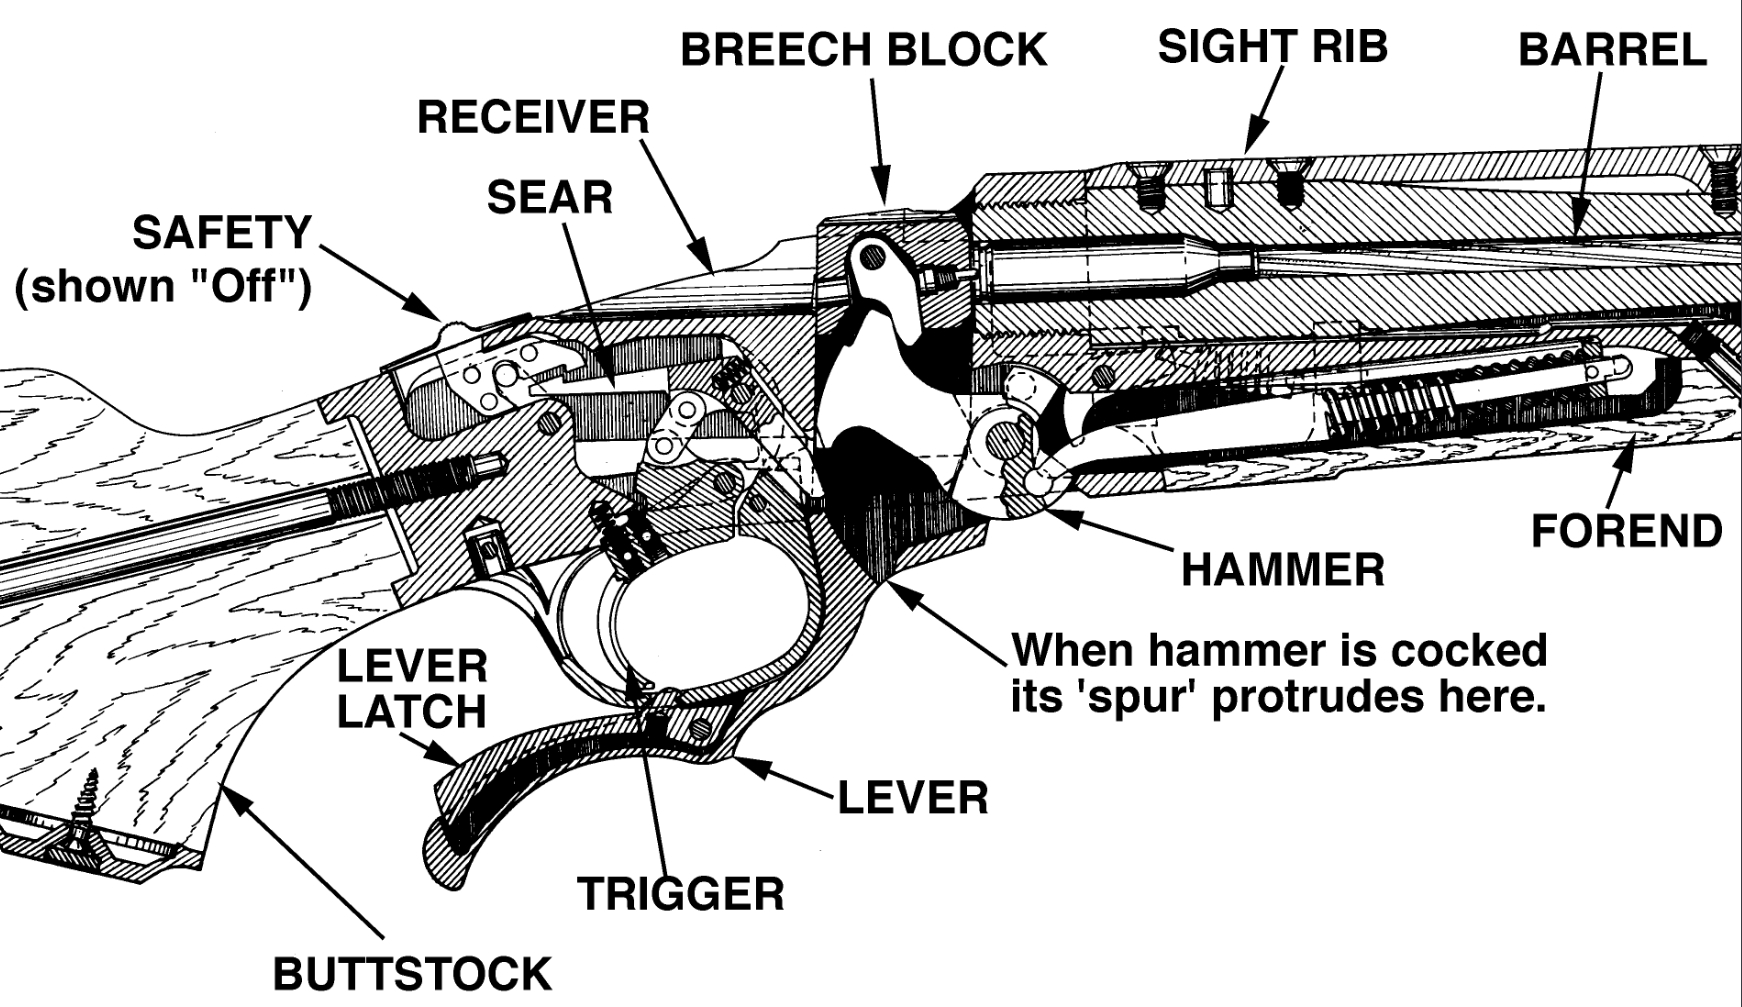 The Ruger No. 1 locates the coil spring main-spring in the fore-end along with the ejector mechanism. (Picture courtesy Ruger).